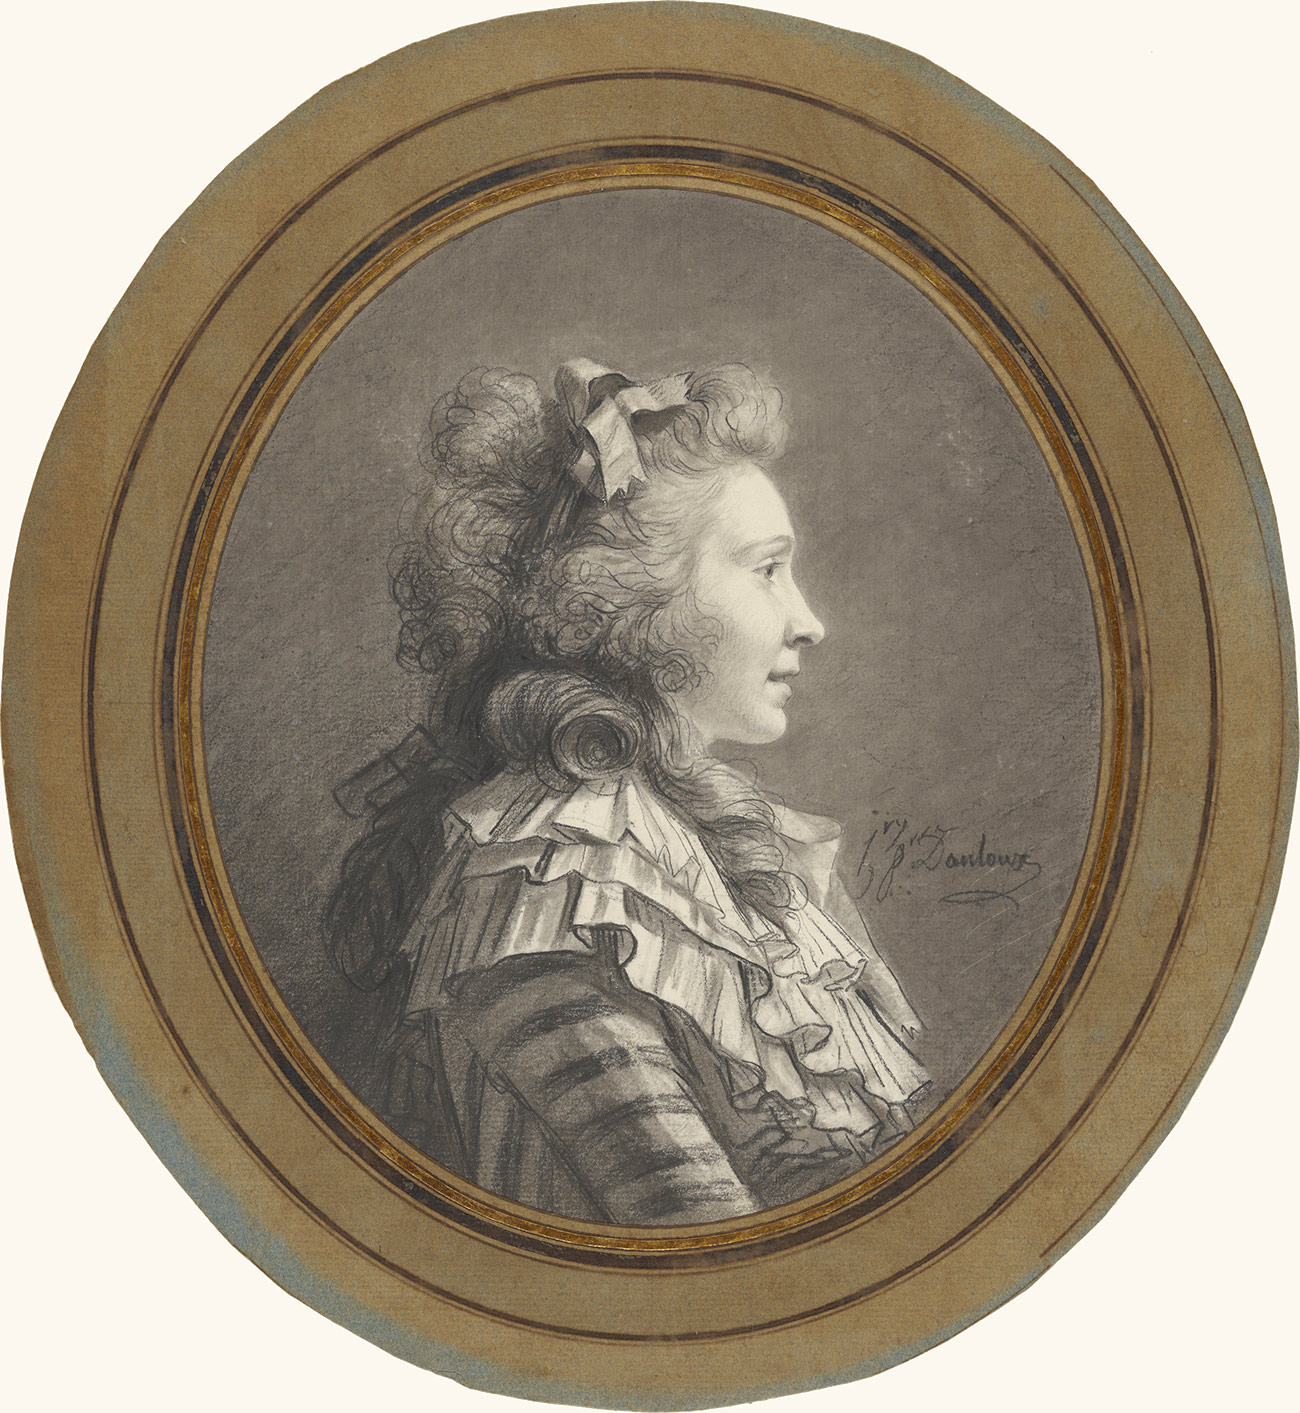 Cameo portrait of woman facing right, with long curly hair and a frilly striped top.